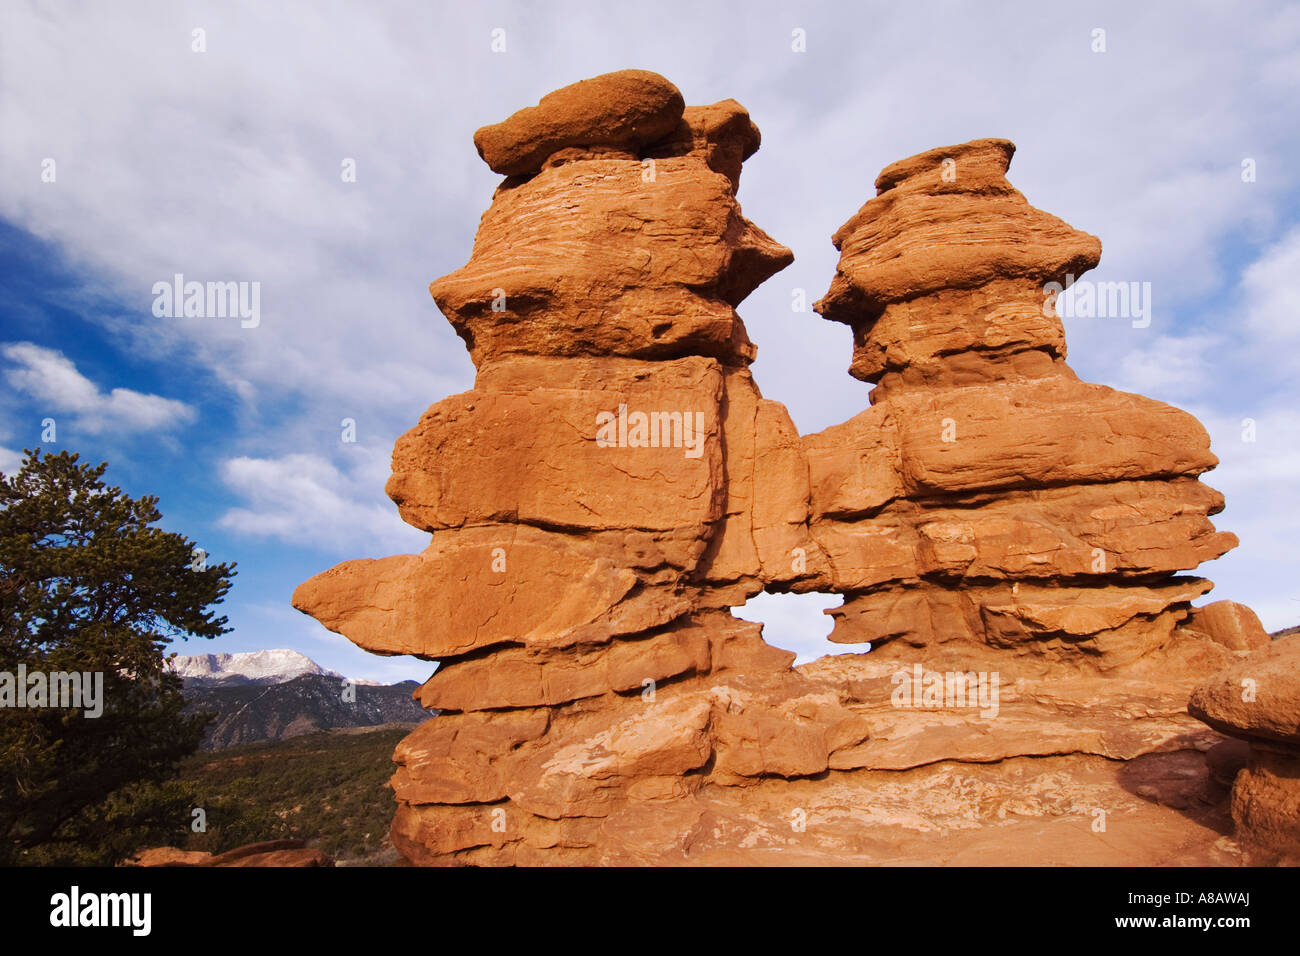 Siamese Twins Rock formation and Pikes Peak Garden of The